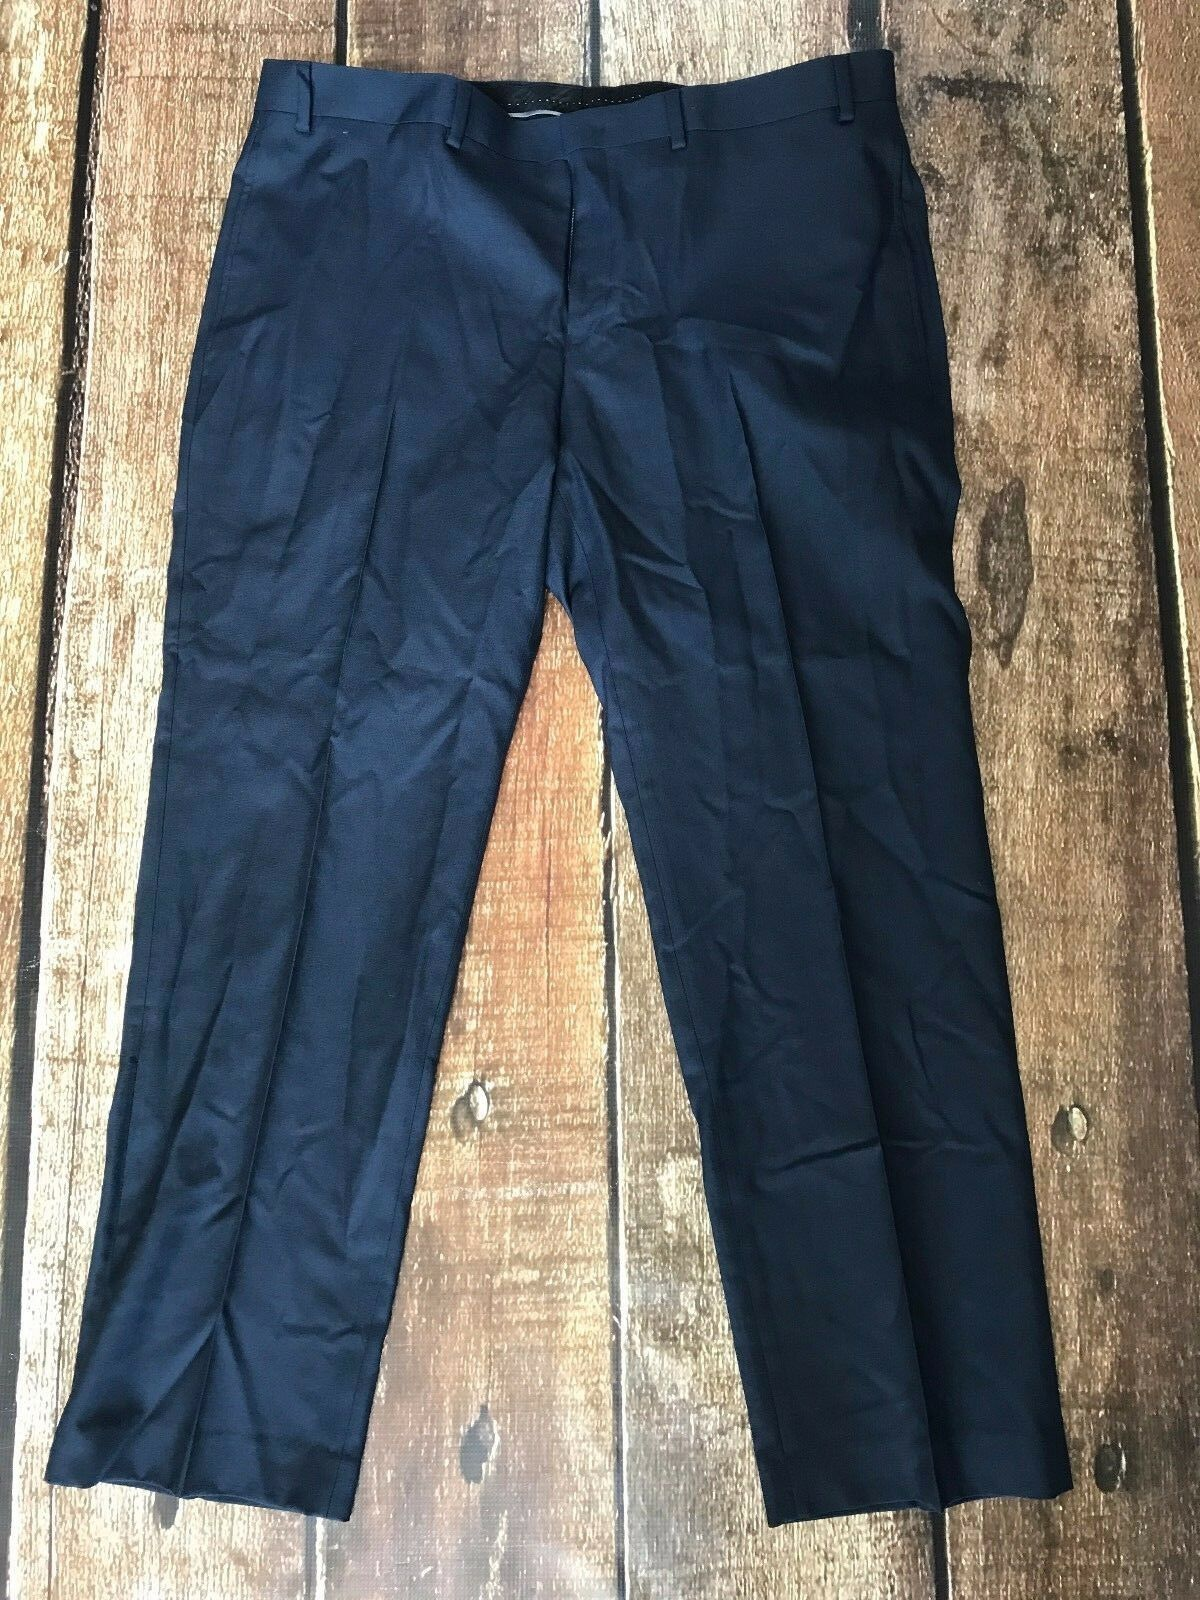 ANDREW MARC SUIT PANTS NAVY MENS SIZE 37X30 NEW WITH TAG